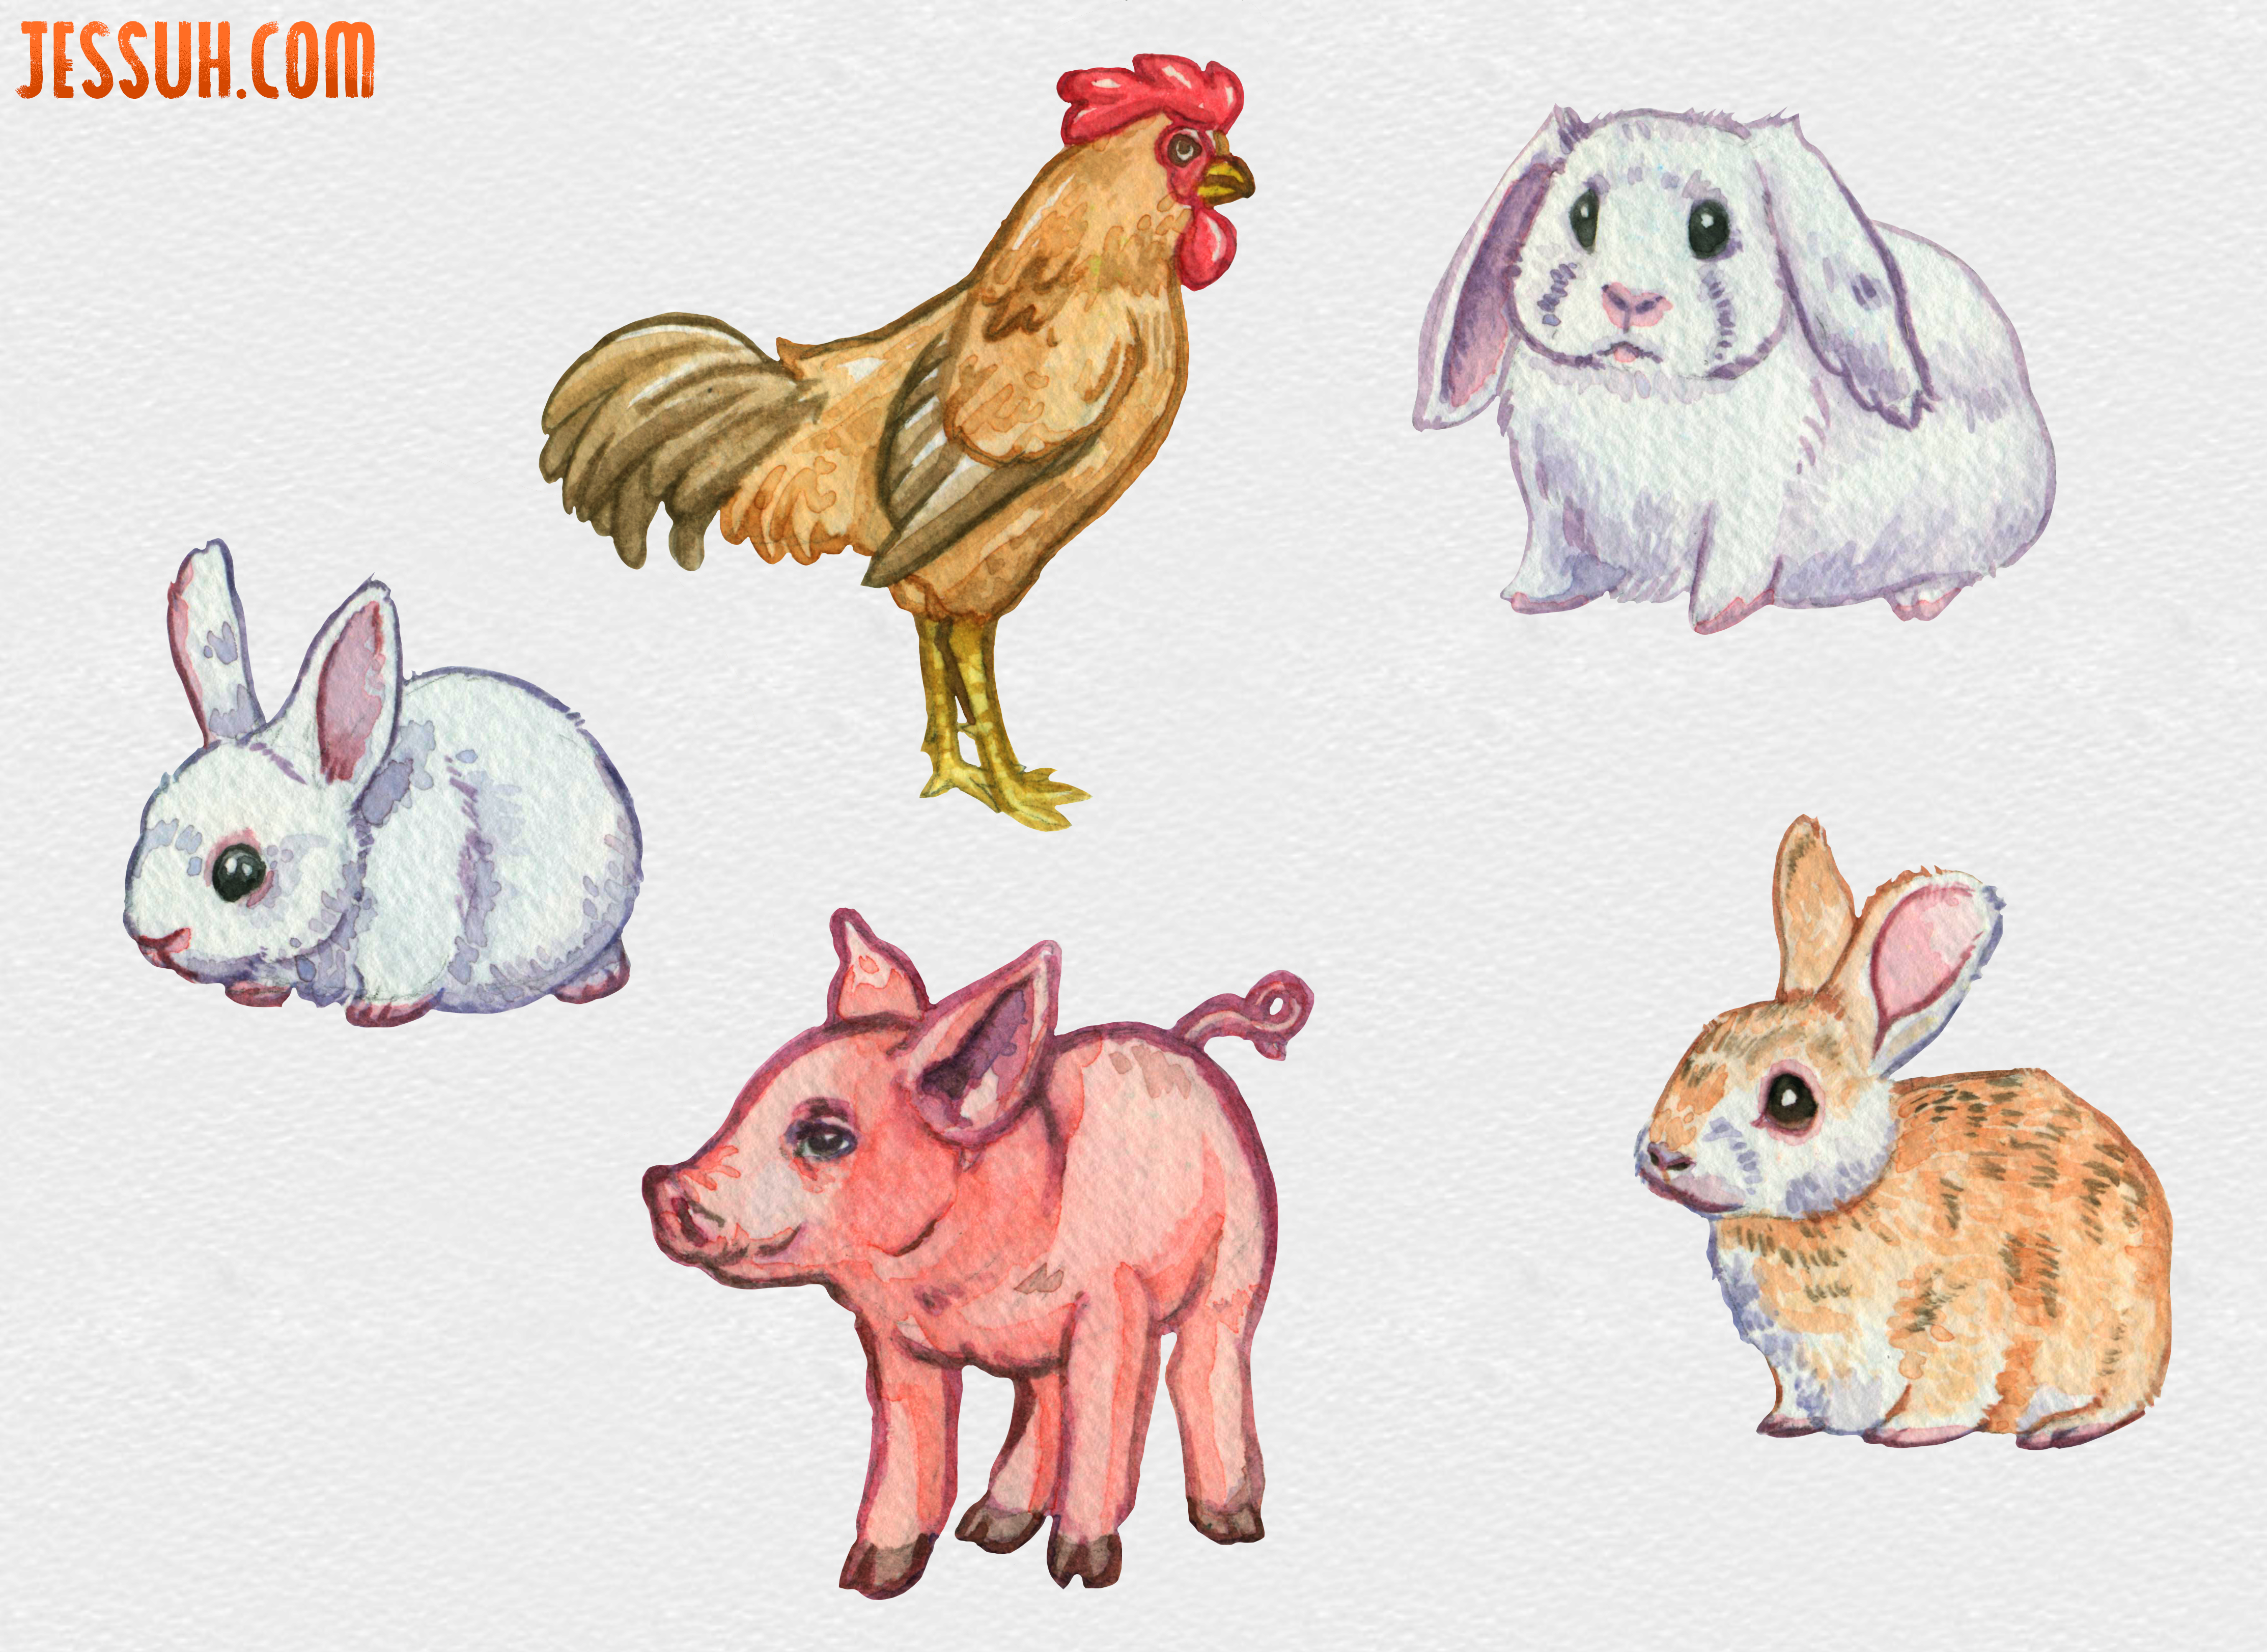 Watercolor painting of two white rabbits, a tan bunny, pink piglet and brown rooster